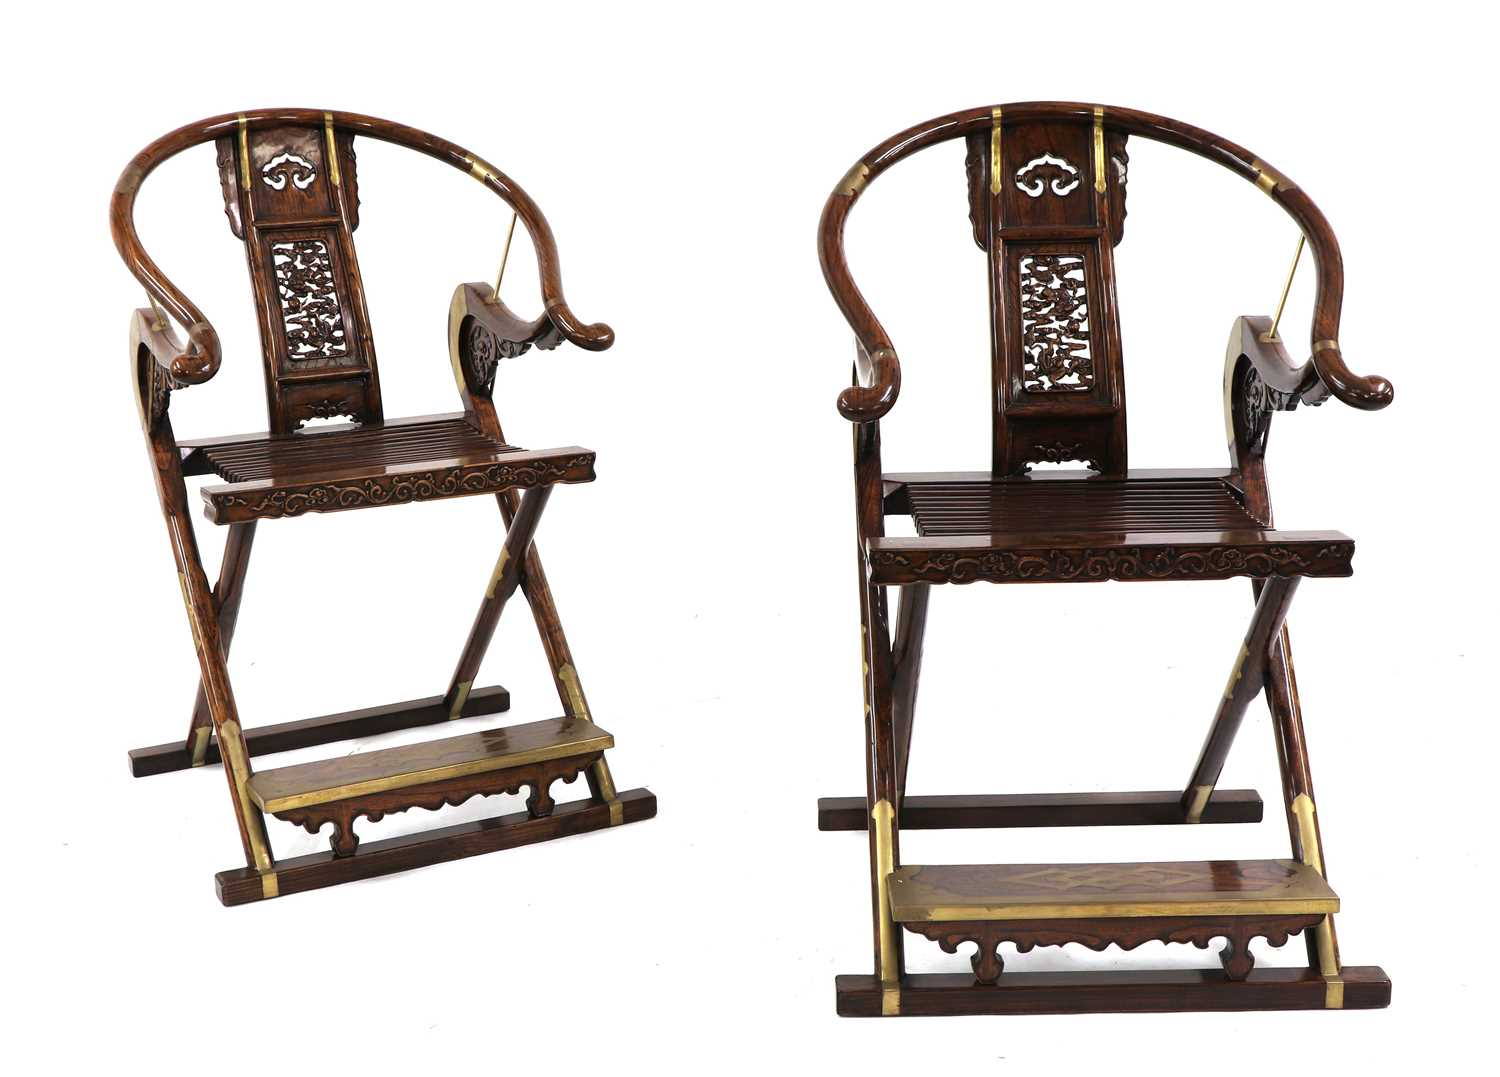 Lot 71 - A pair of Chinese elm chairs